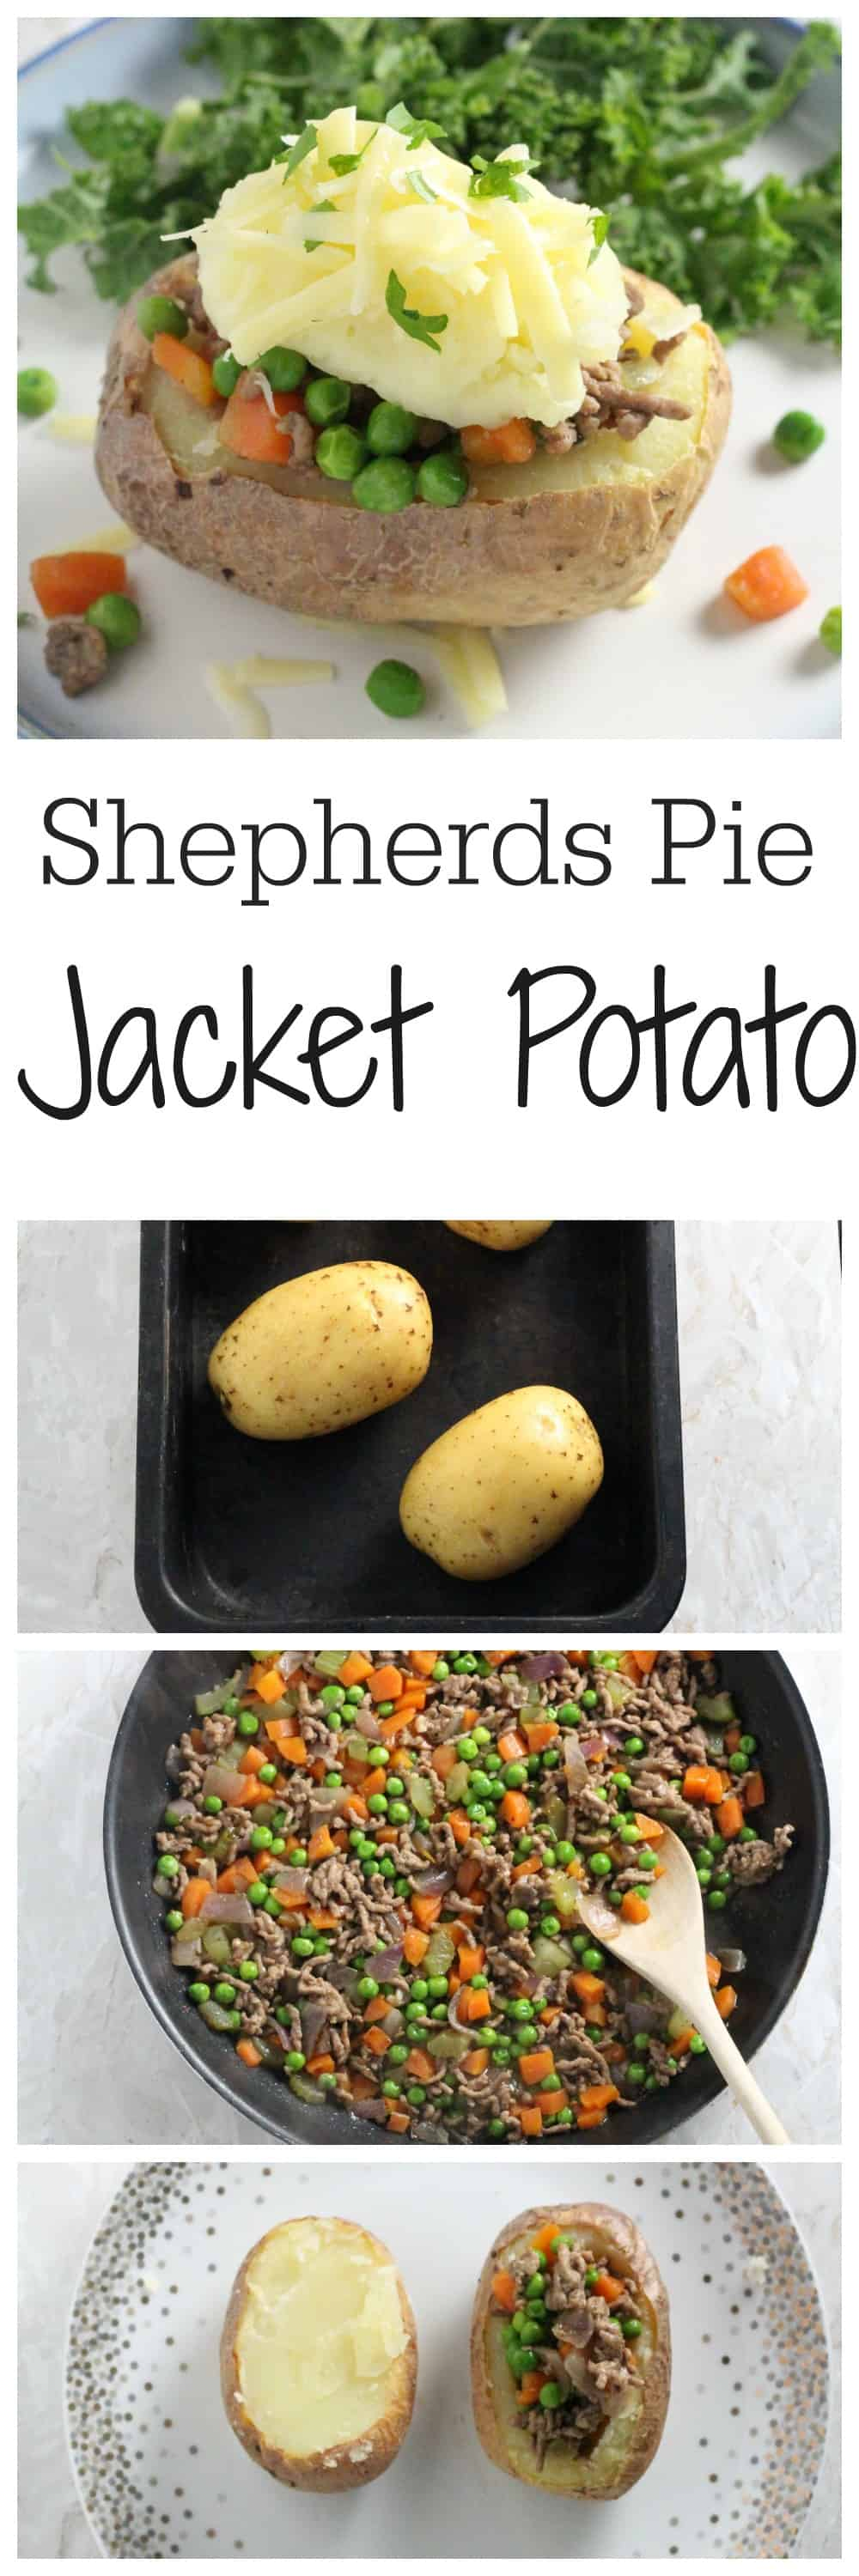 how to make jacket potato in oven